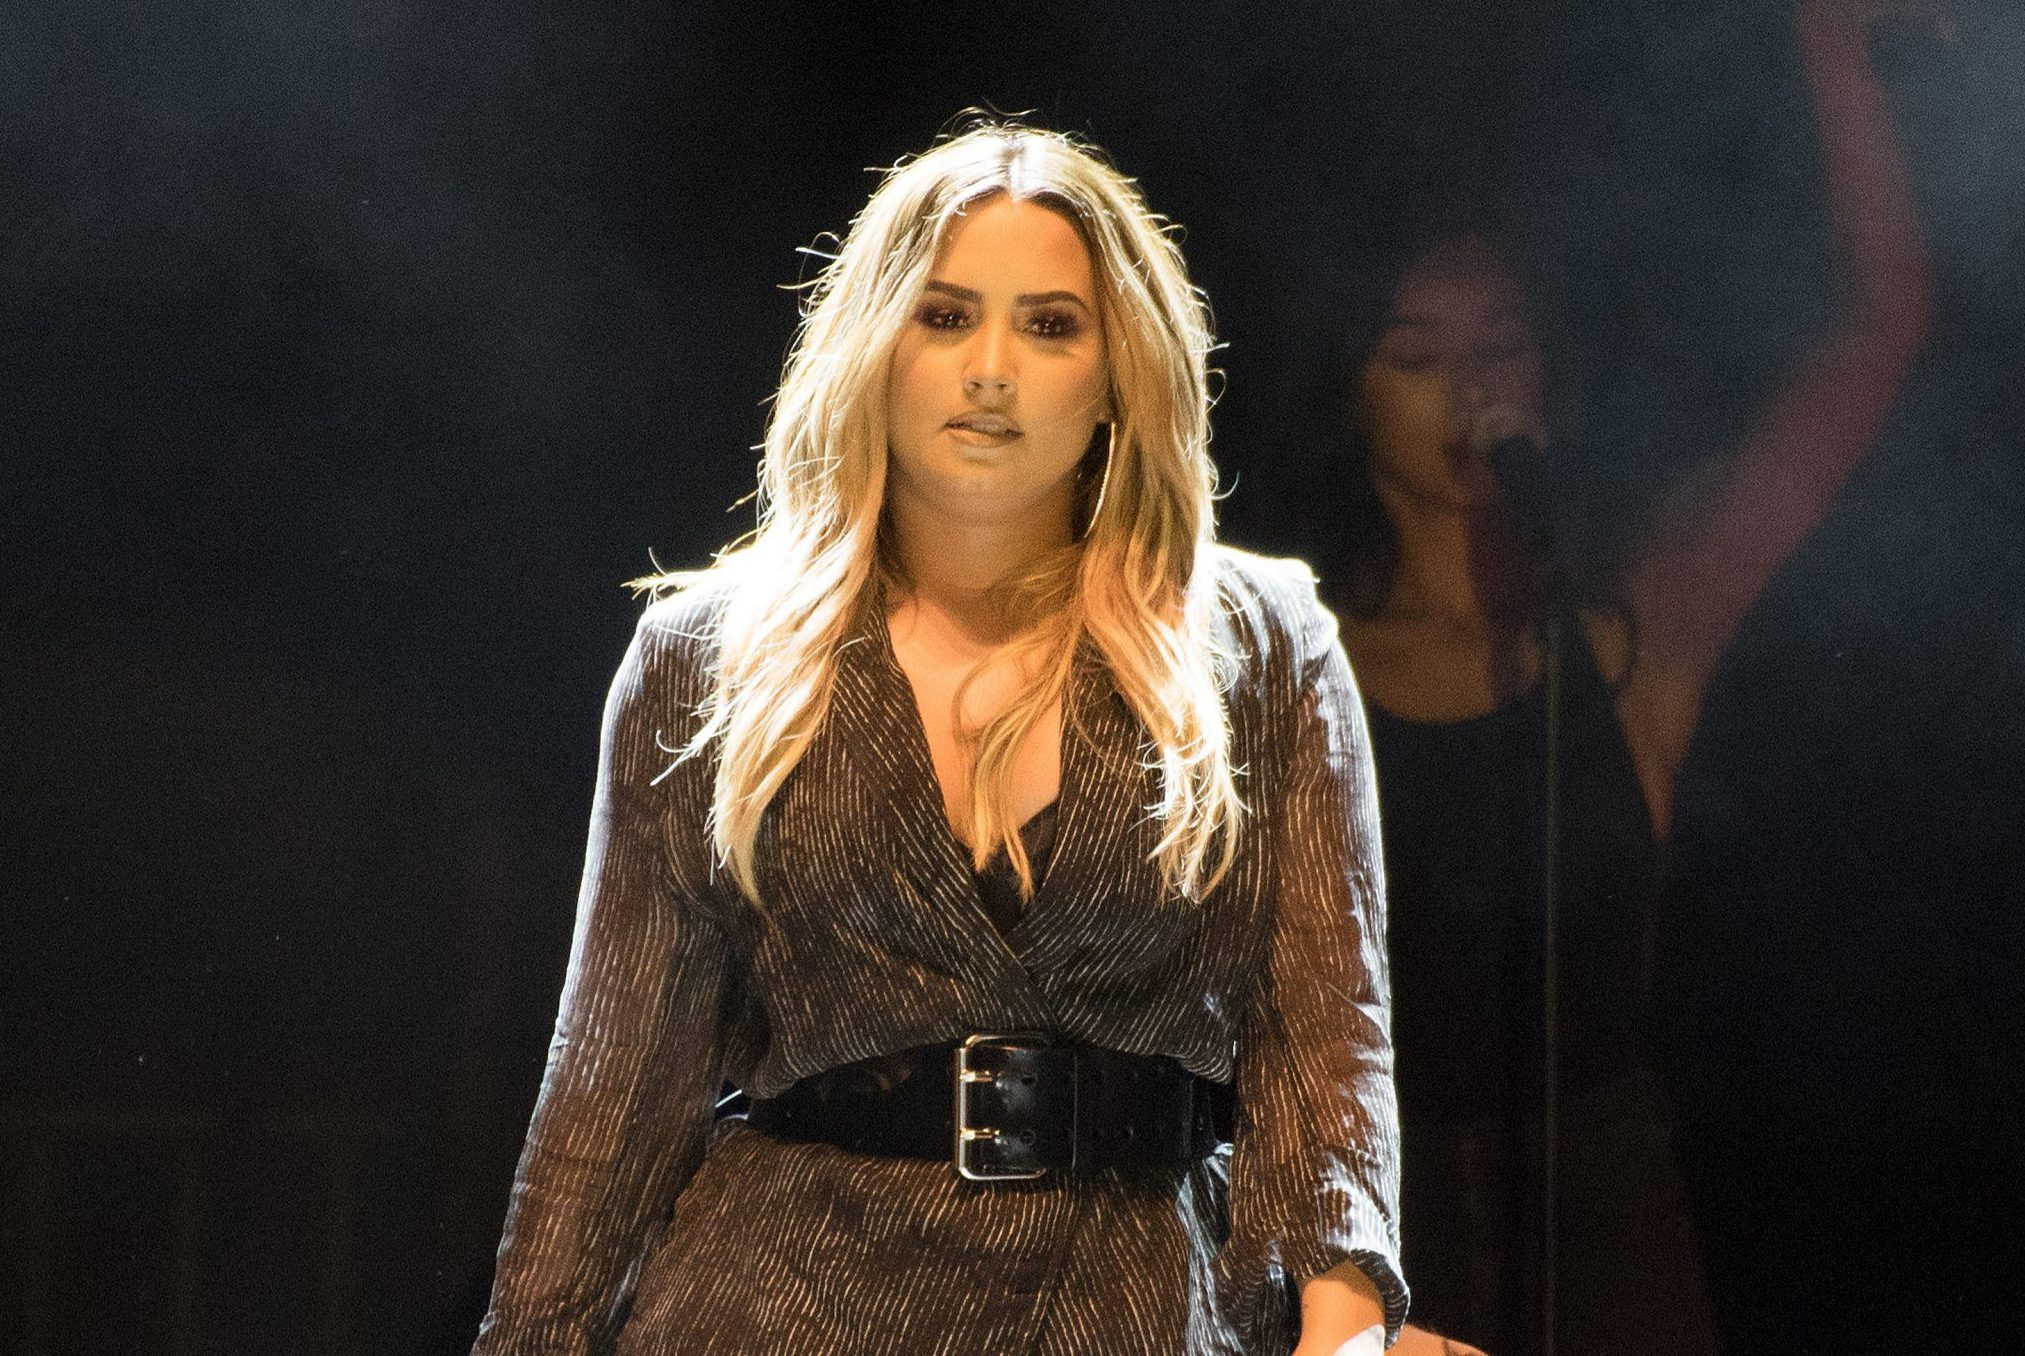 Demi Lovato 'to stay in rehab for months' as she 'focuses on herself' following overdose